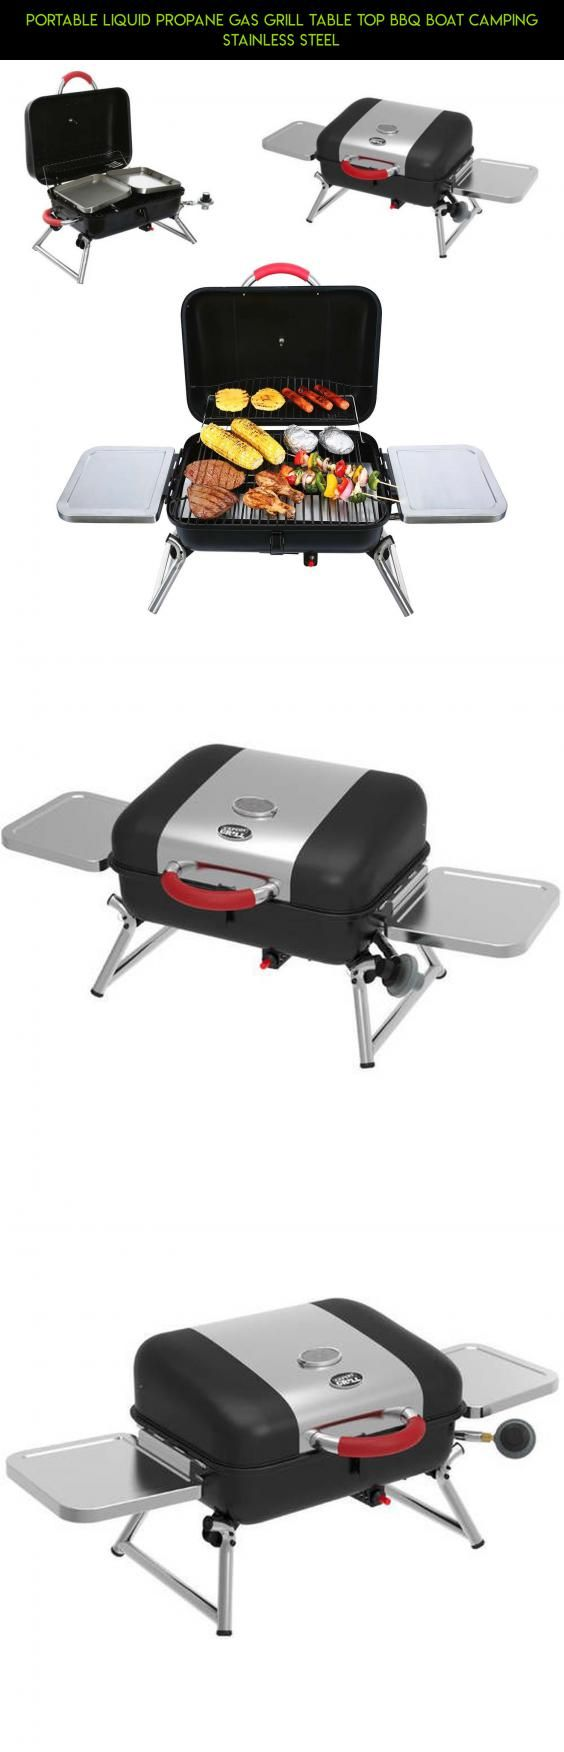 Portable Liquid Propane Gas Grill Table Top BBQ Boat Camping Stainless Steel #drone #table #technology #camera #kit #fpv #parts #shopping #tech #propane #plans #racing #gadgets #top #grills #products